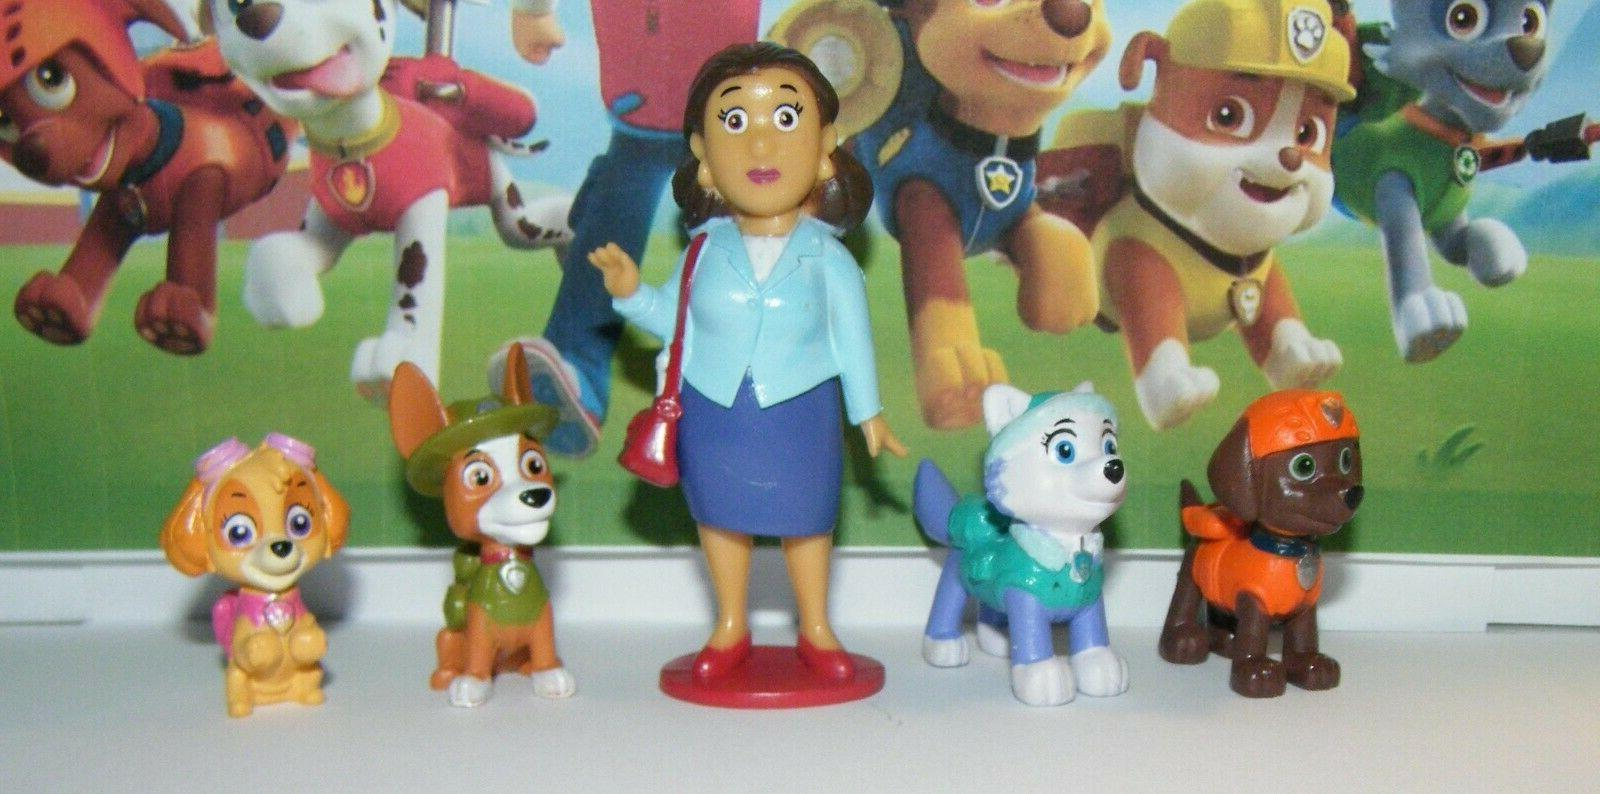 Nickelodeon PAW Set with figures Featuring Original